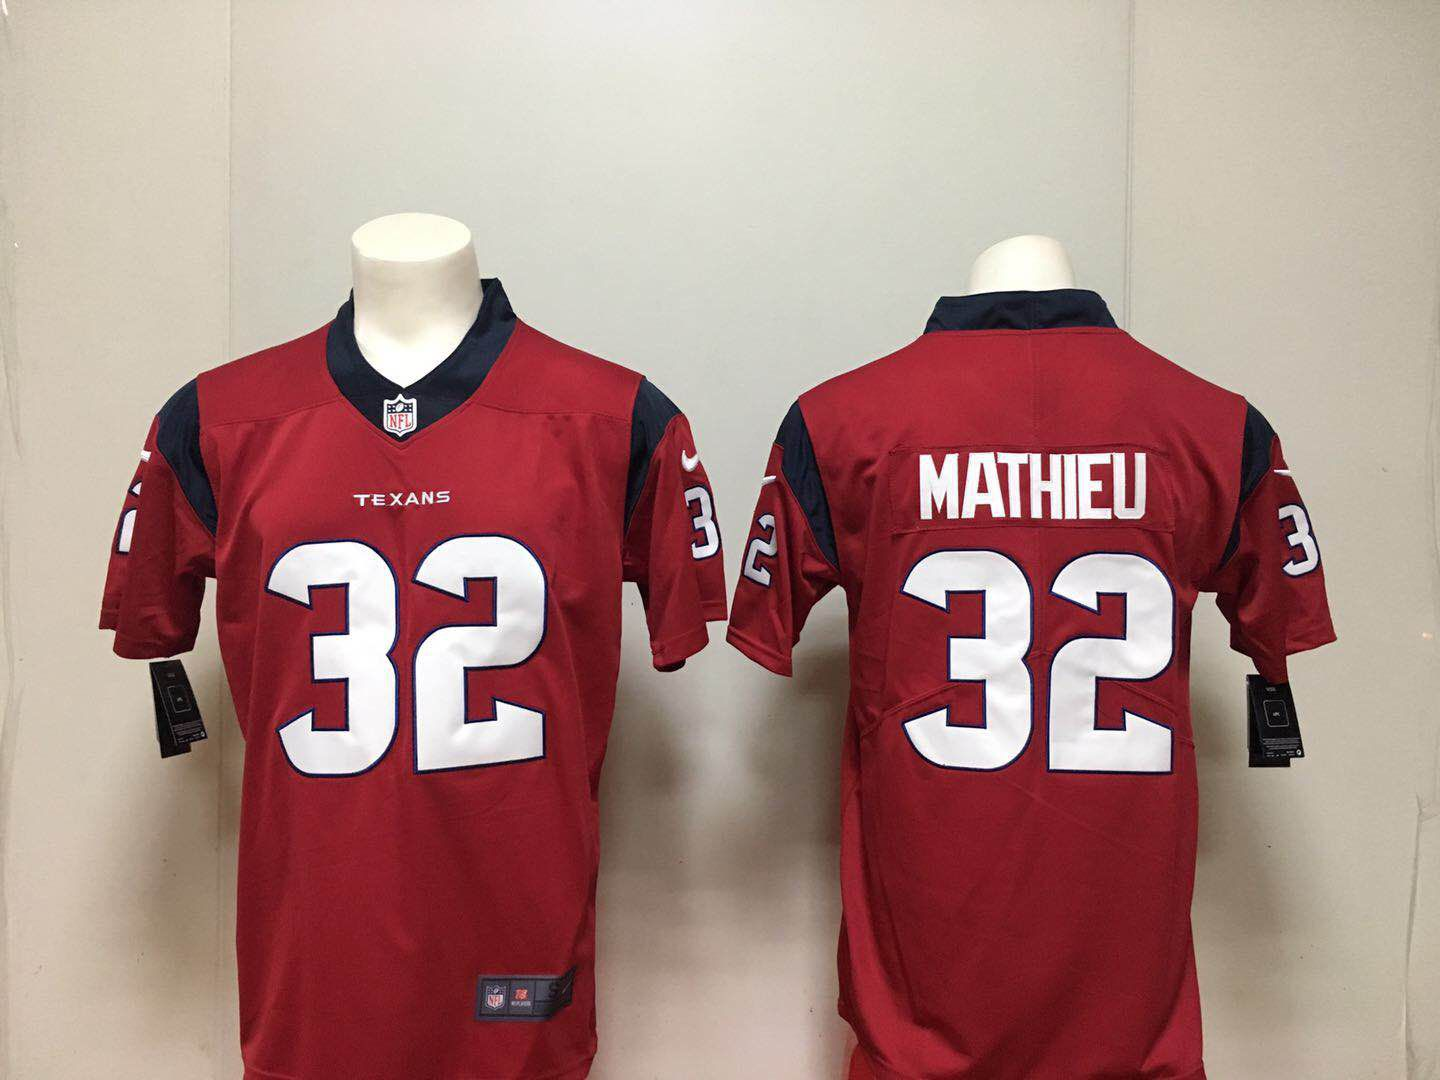 pretty nice 0d9f7 a2d47 supply Jerseys Nfl Shipping Texans With Jerseys Free Cheap ...